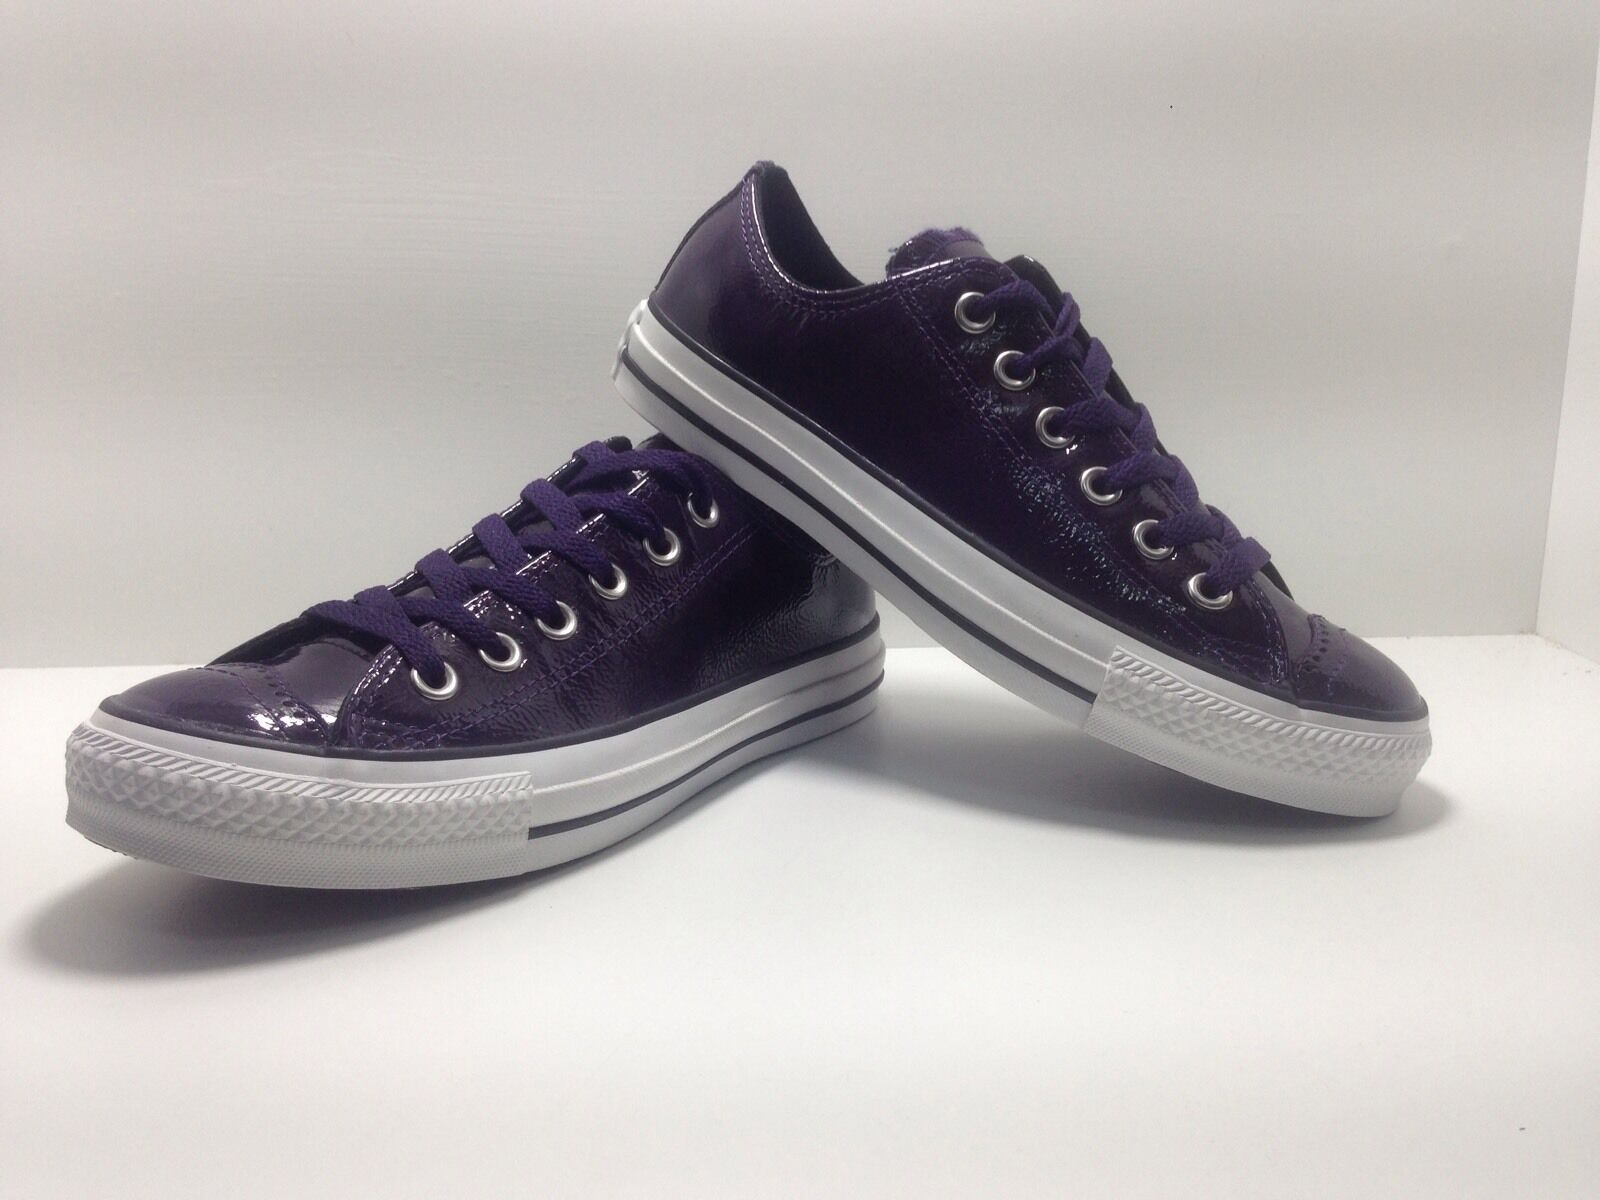 chaussures N.38 CONVERSE COL. violet baskets IN PELLE ART. 112372 baskets BASSE